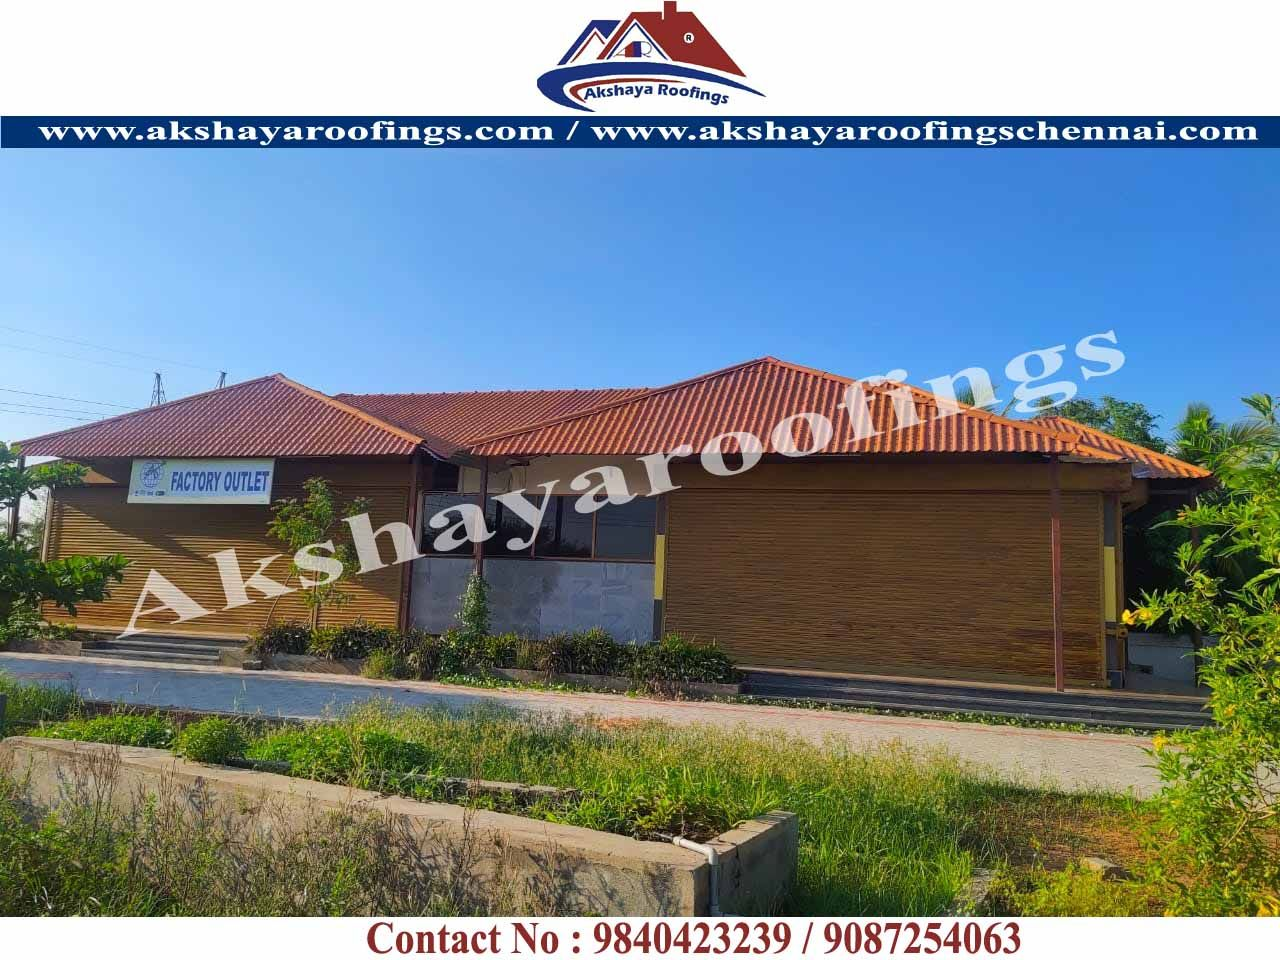 Keralastyleroofingshed Roofingshedcontractors In 2020 Cool Roof Roofing Outdoor Decor